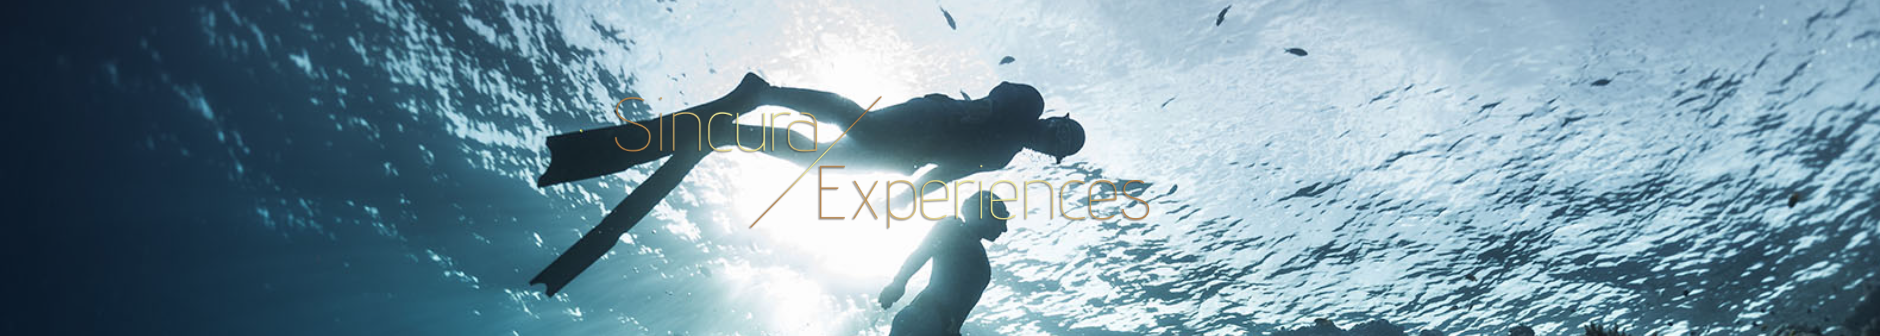 enjoy once in a lifestime experiences with sincura concierge